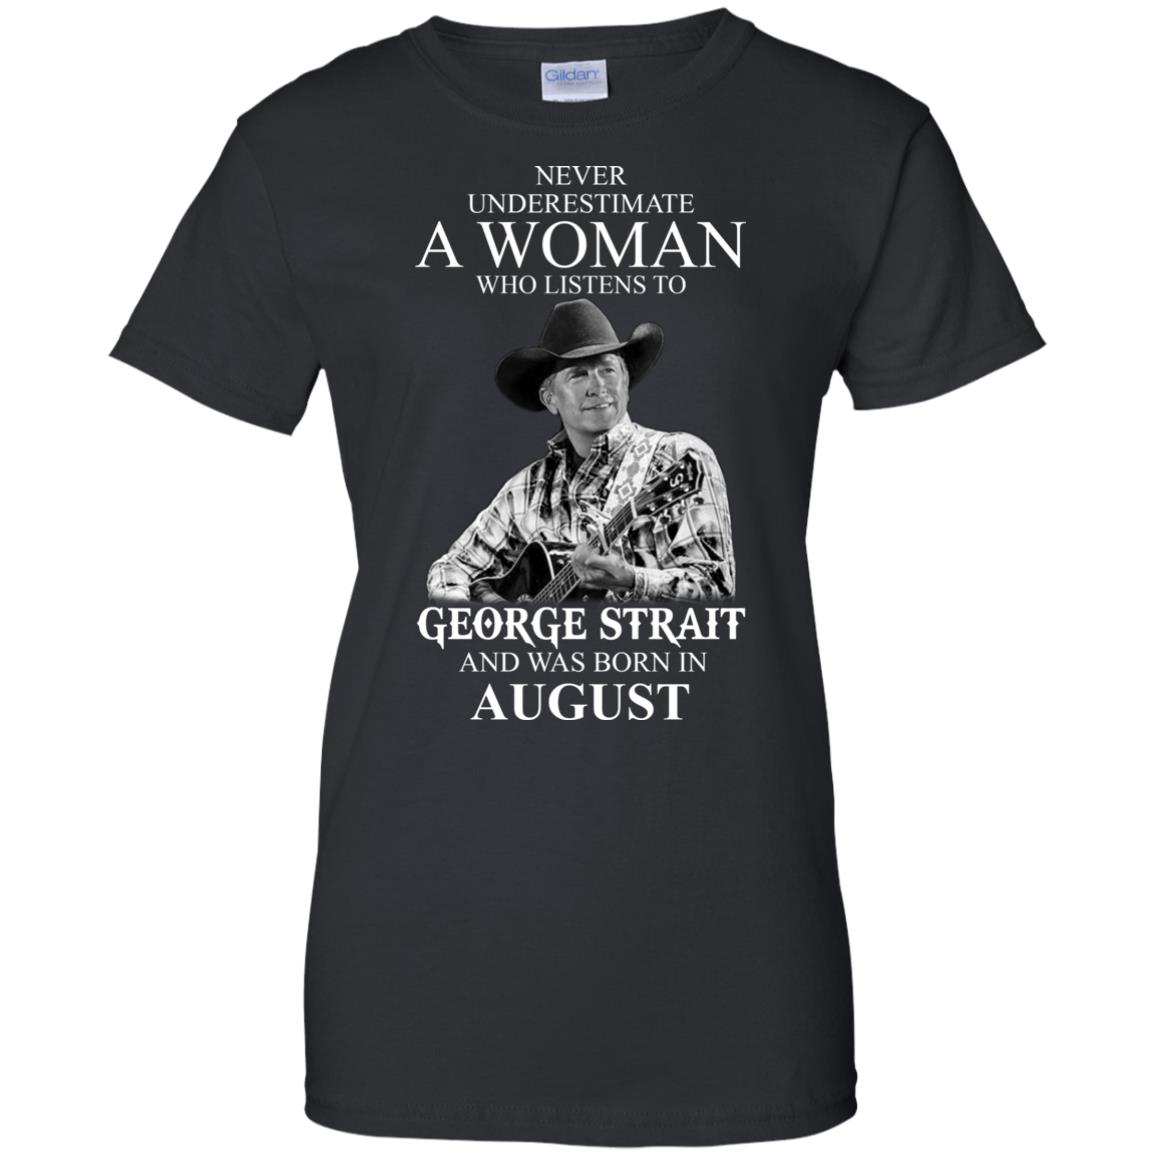 image 396 - Never Underestimate A Woman Who Listens To George Strait And Was Born In August shirt